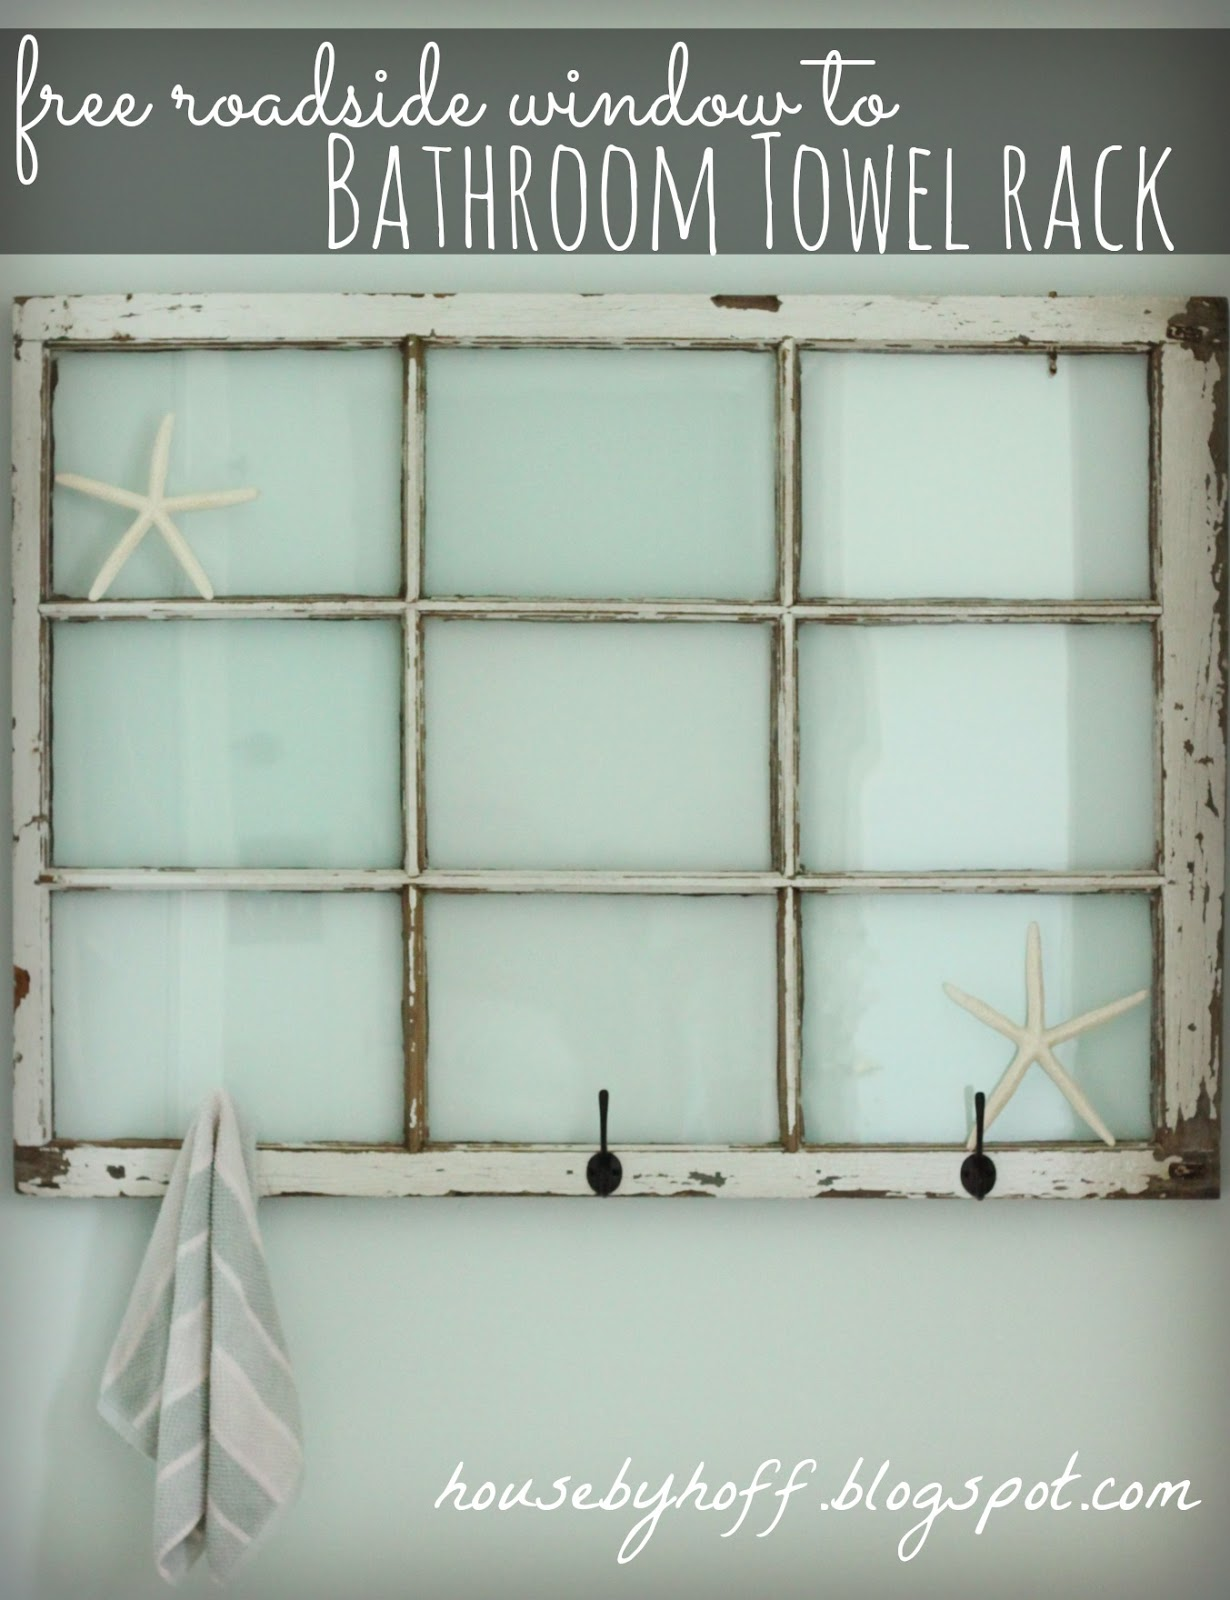 Re-purposed Window Bathroom Towel Rack